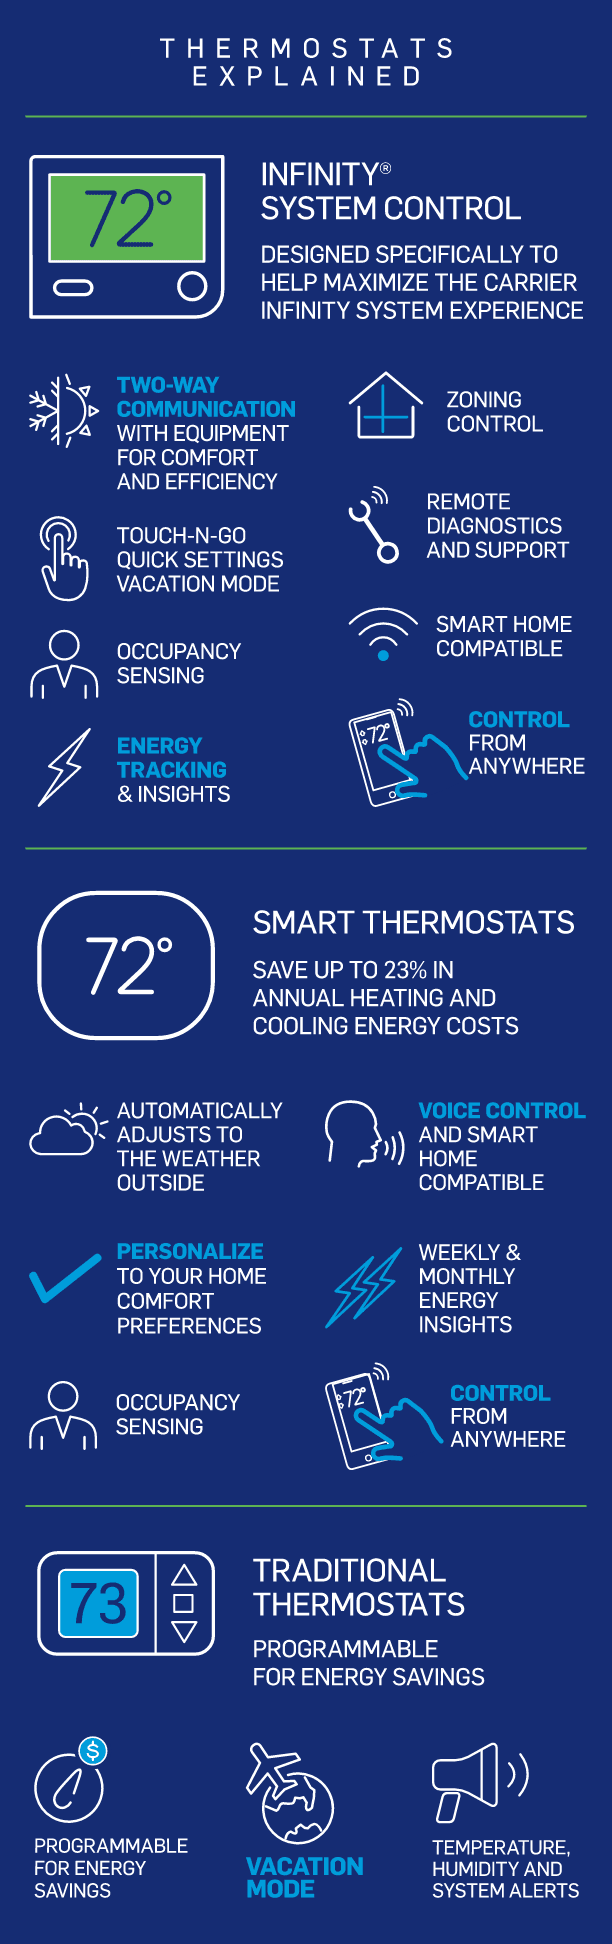 carrier-thermostats-explained-infographic-mb